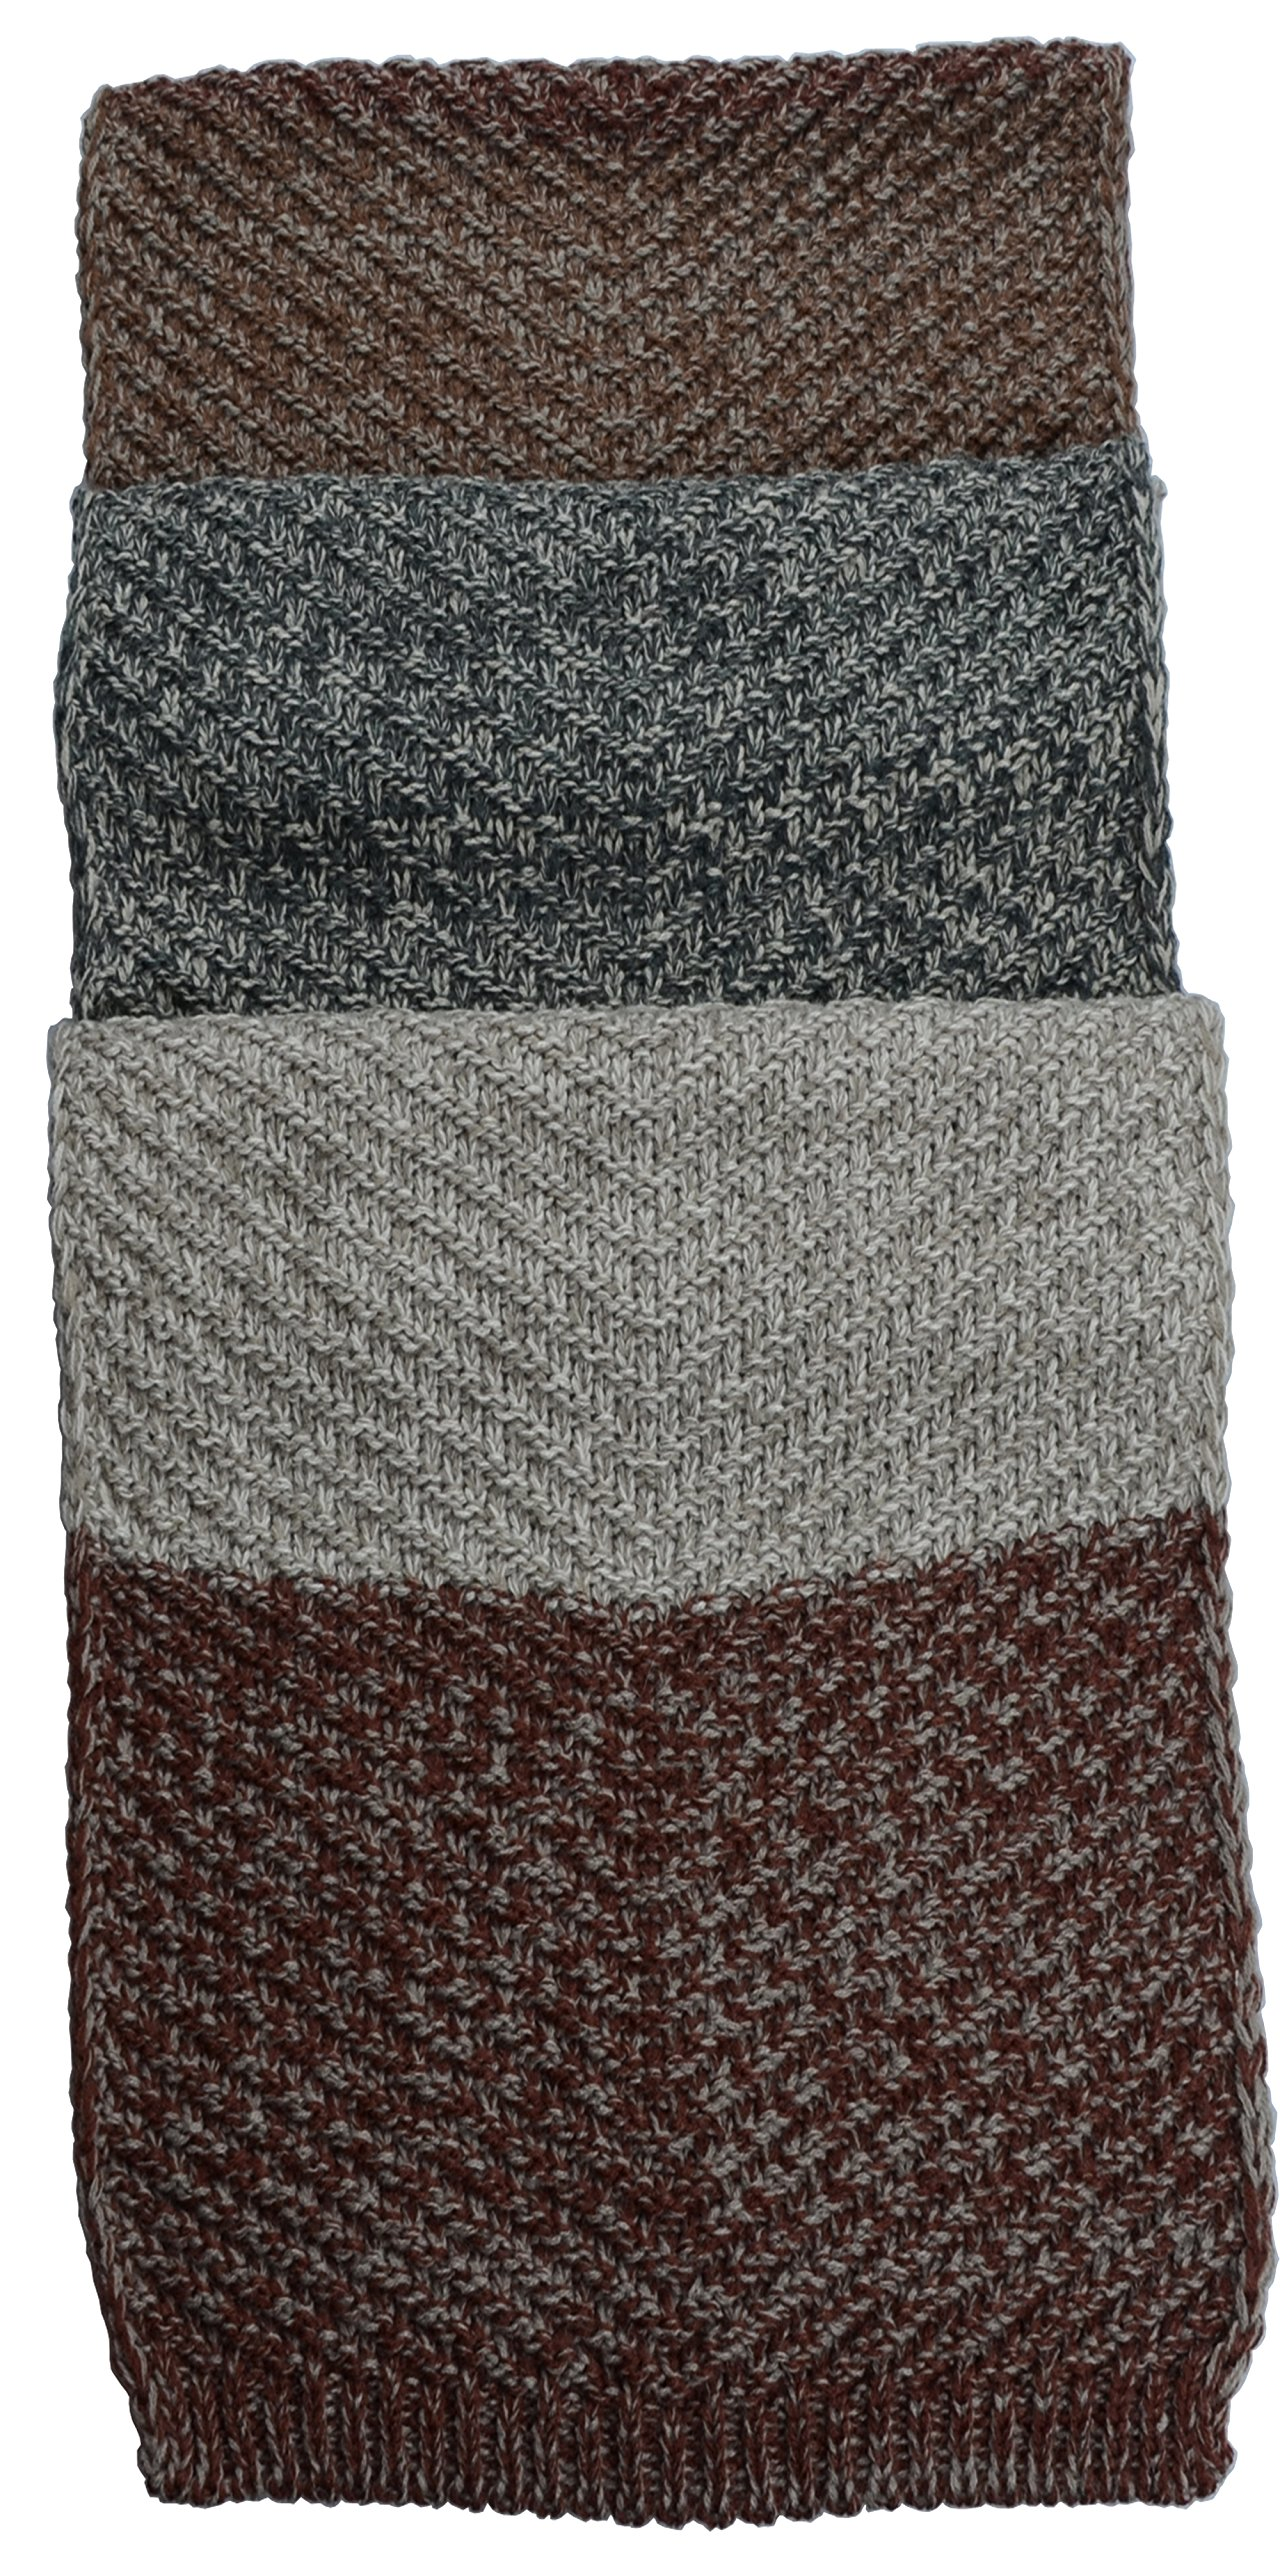 Women Men Winter Thick Cable Knit Wrap Chunky Warm Scarf All Colors Cont Brown K